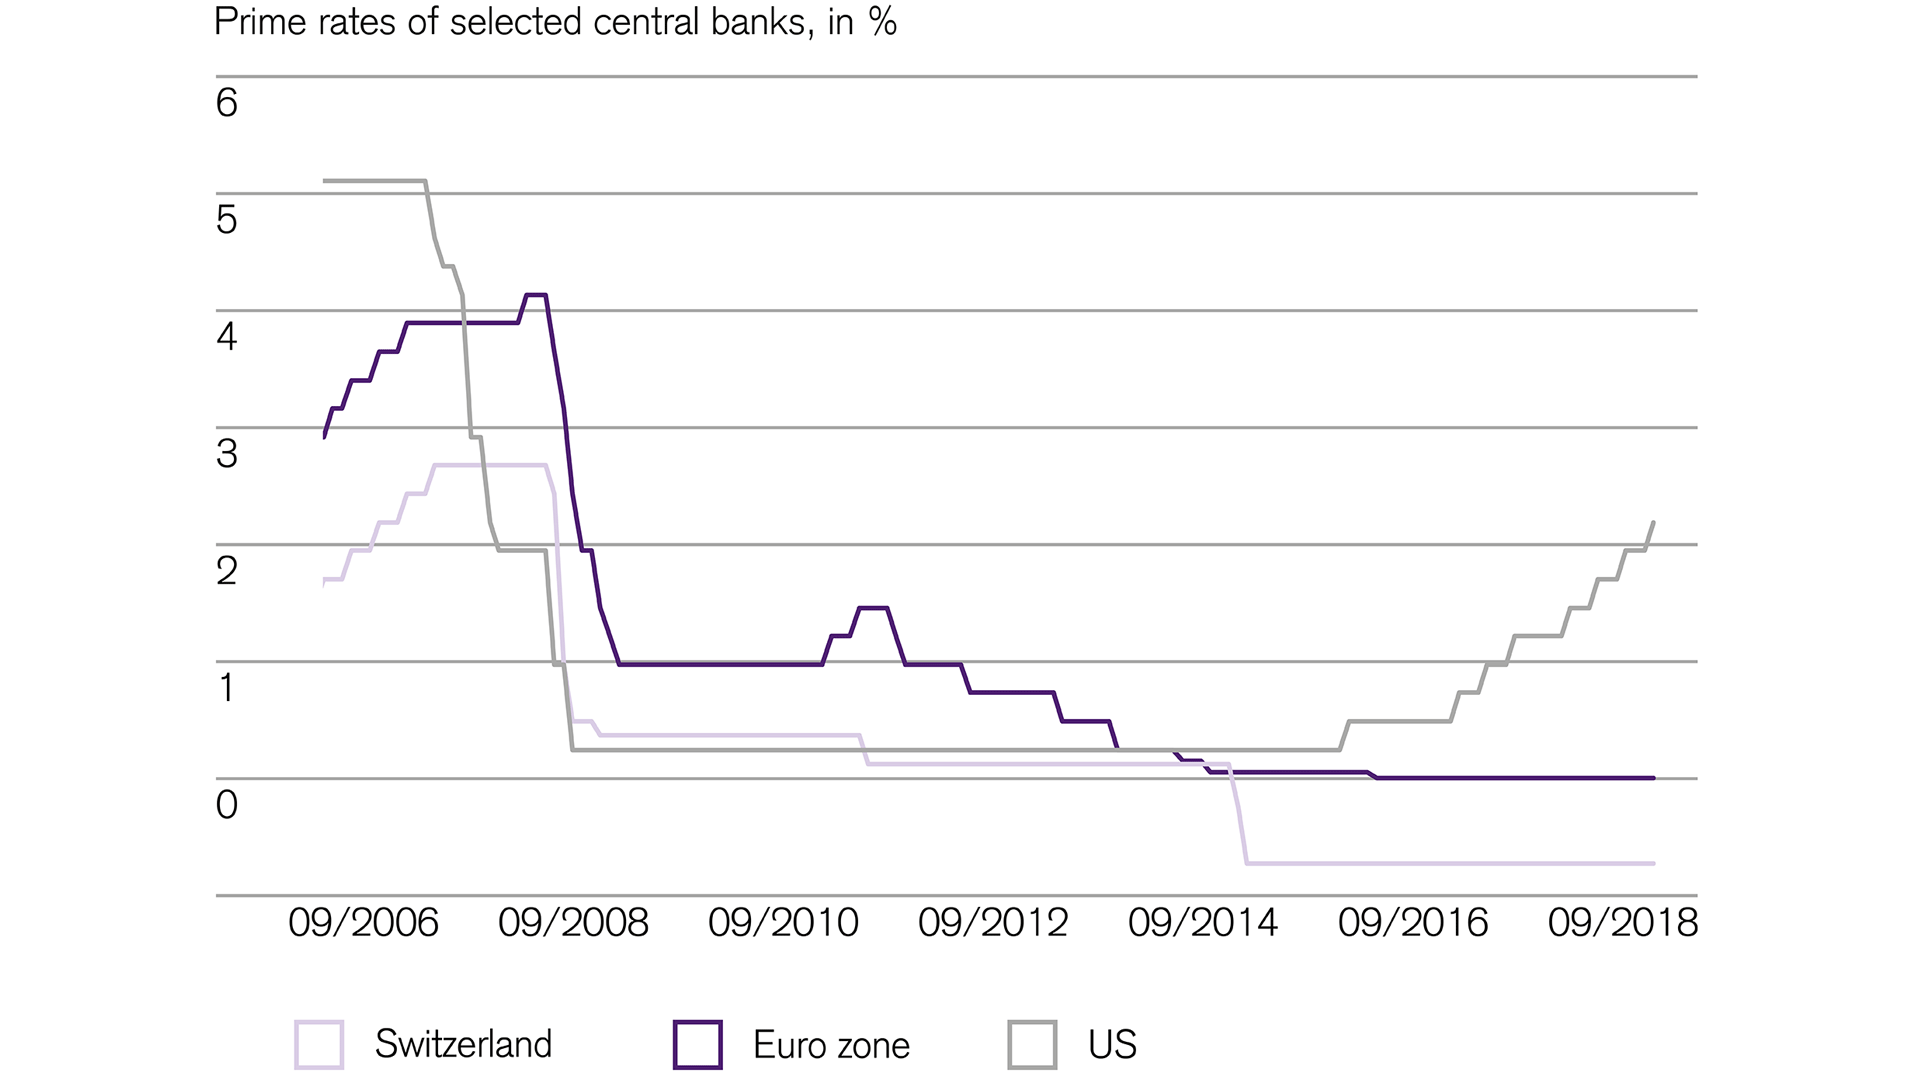 interest-rate-gap-between-Europe-and-US-continues-to-widen